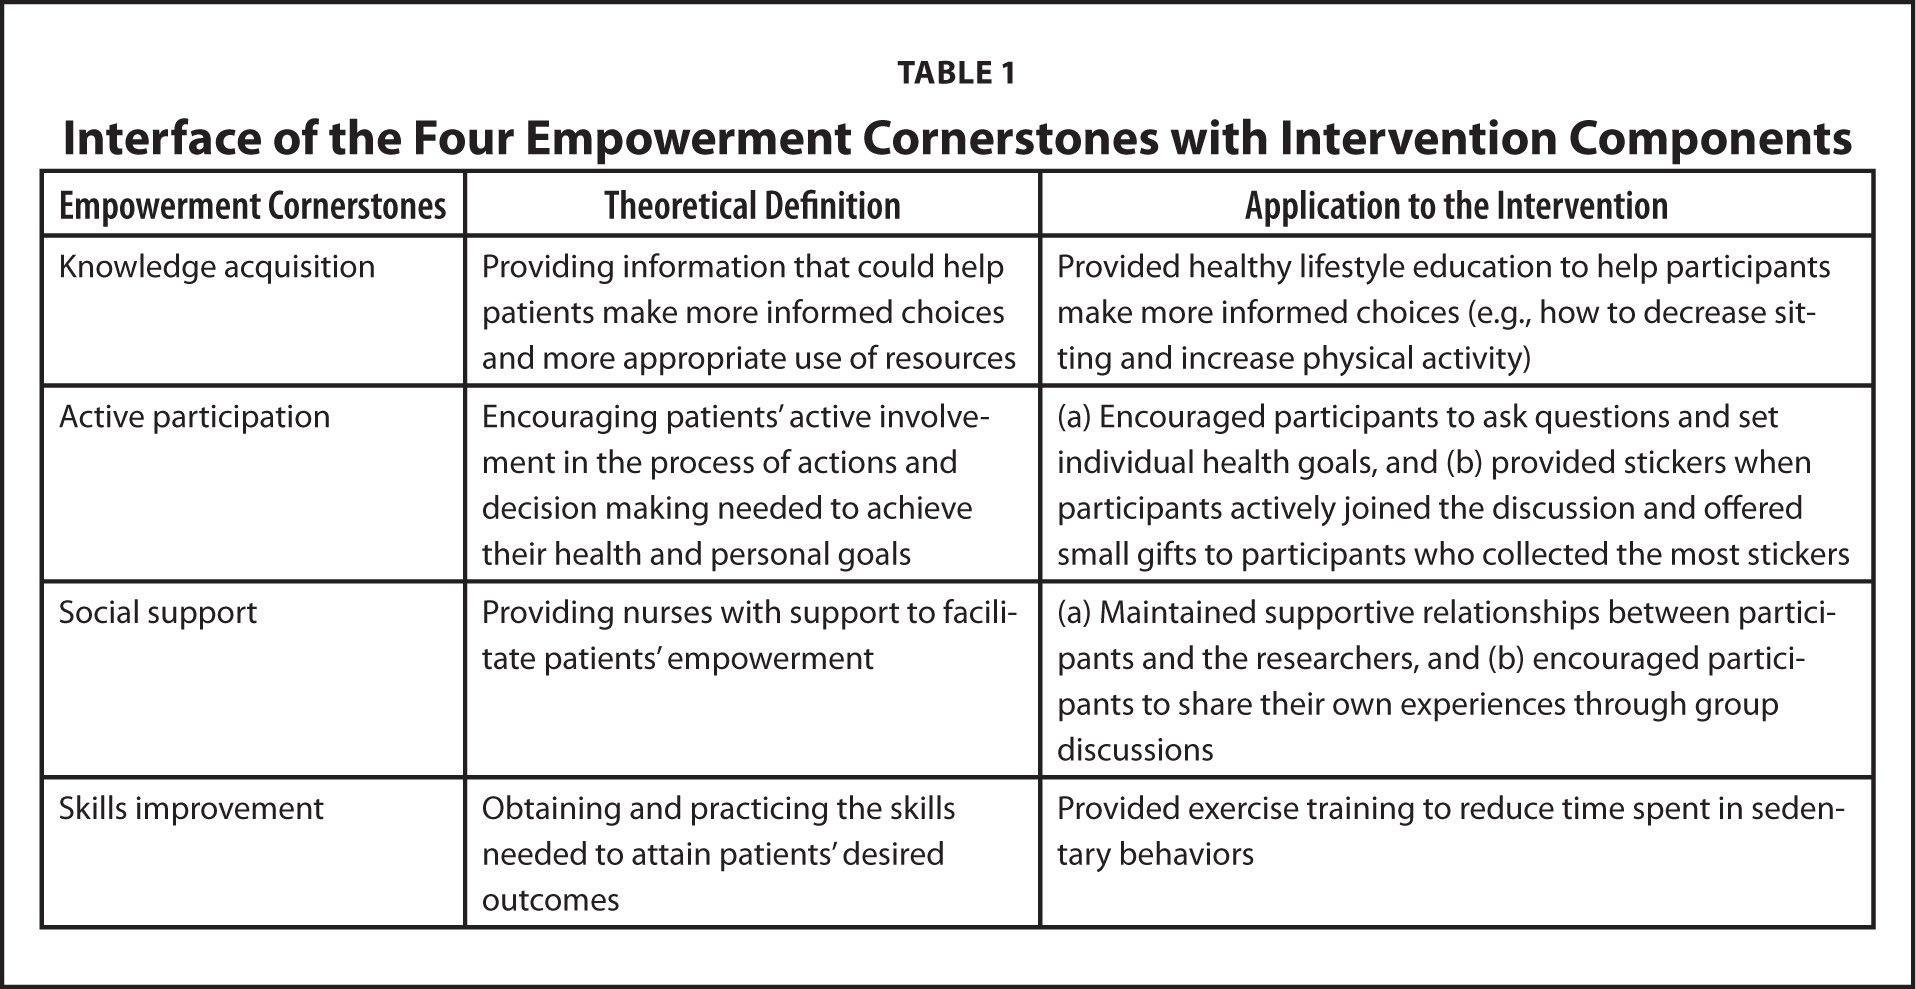 Interface of the Four Empowerment Cornerstones with Intervention Components